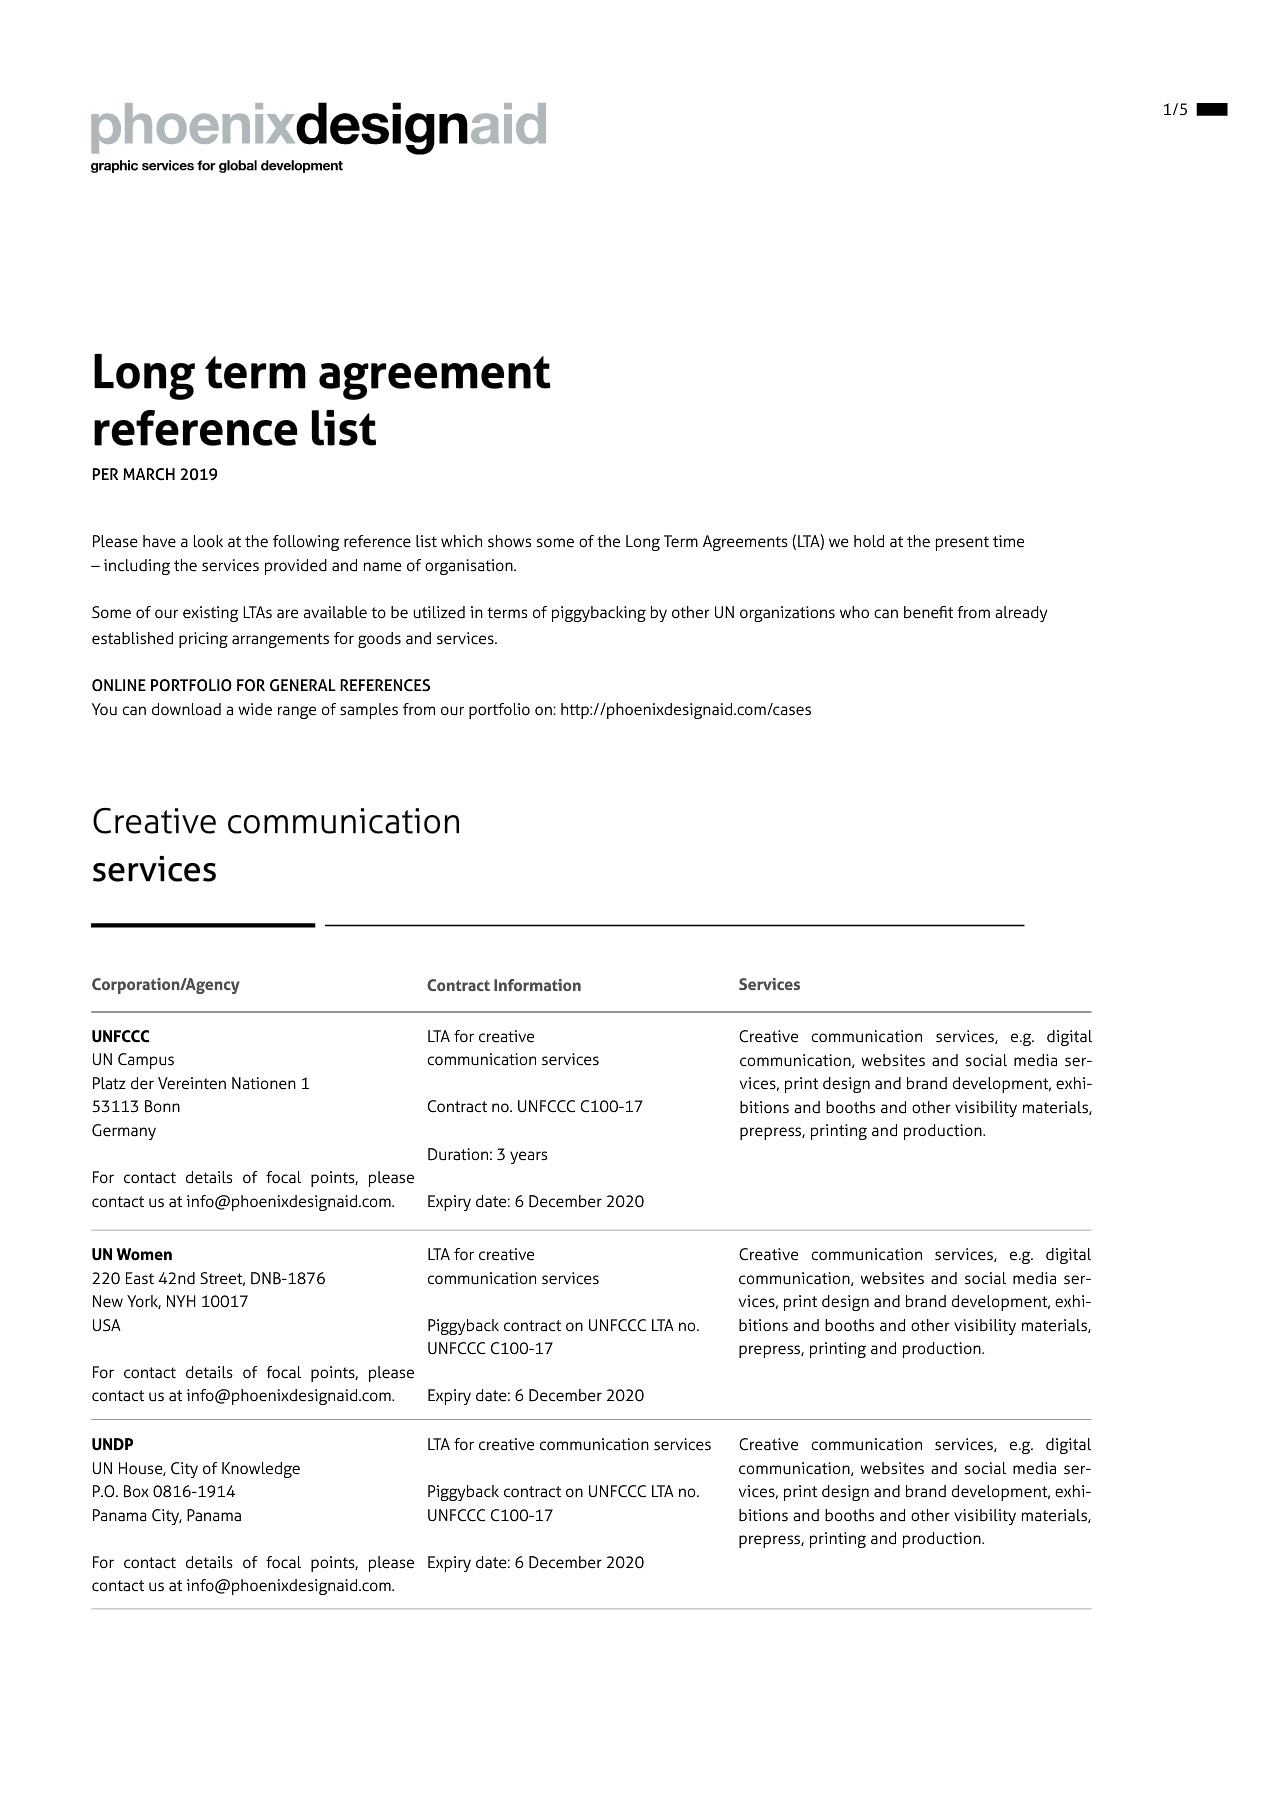 Long Term Agreements